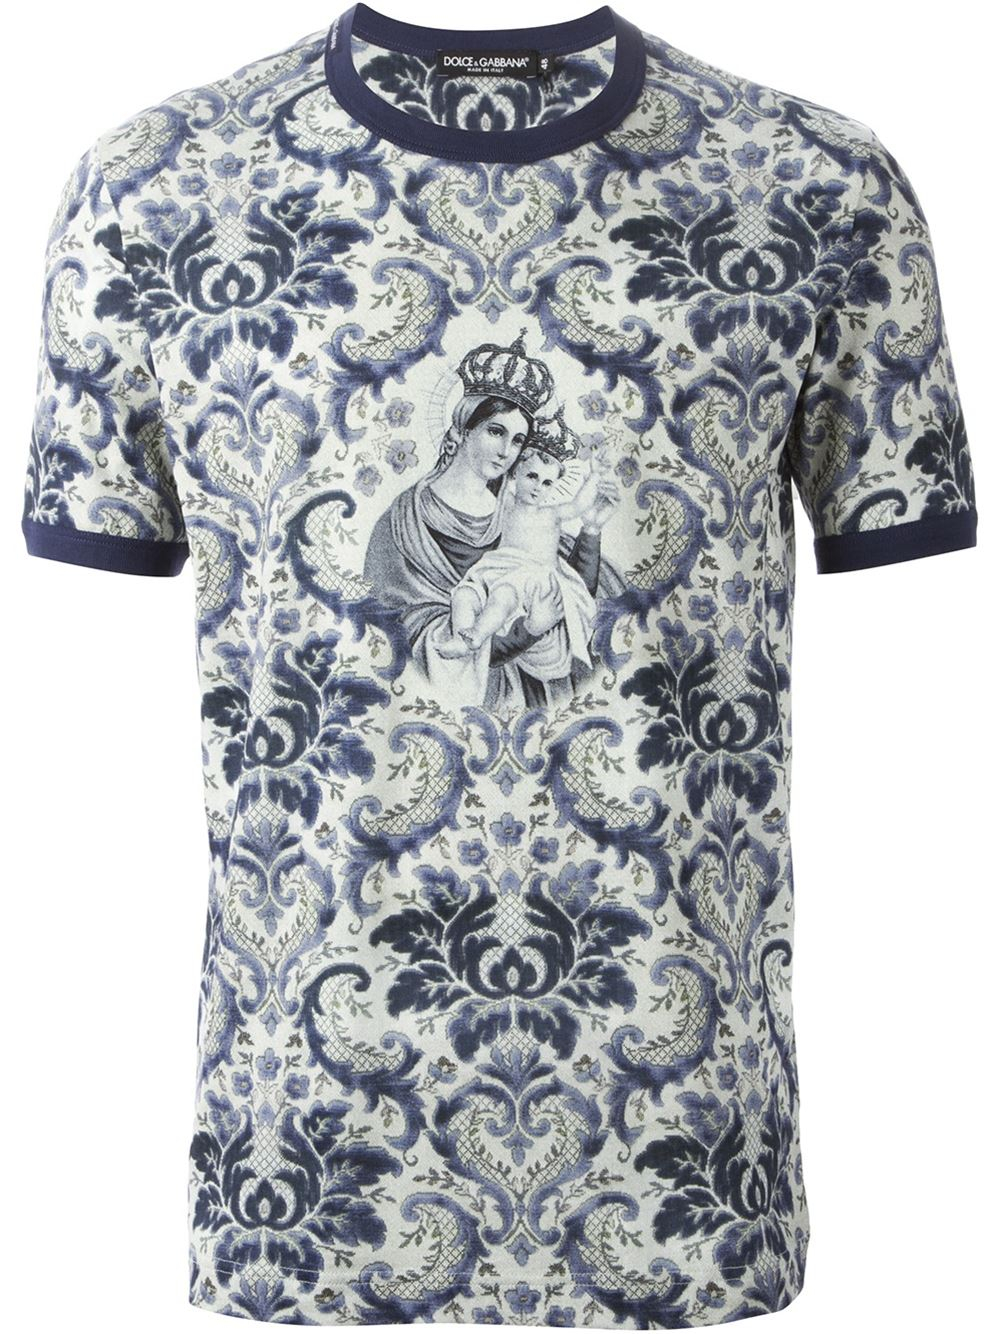 dolce gabbana crowned madonna floral t shirt in gray for